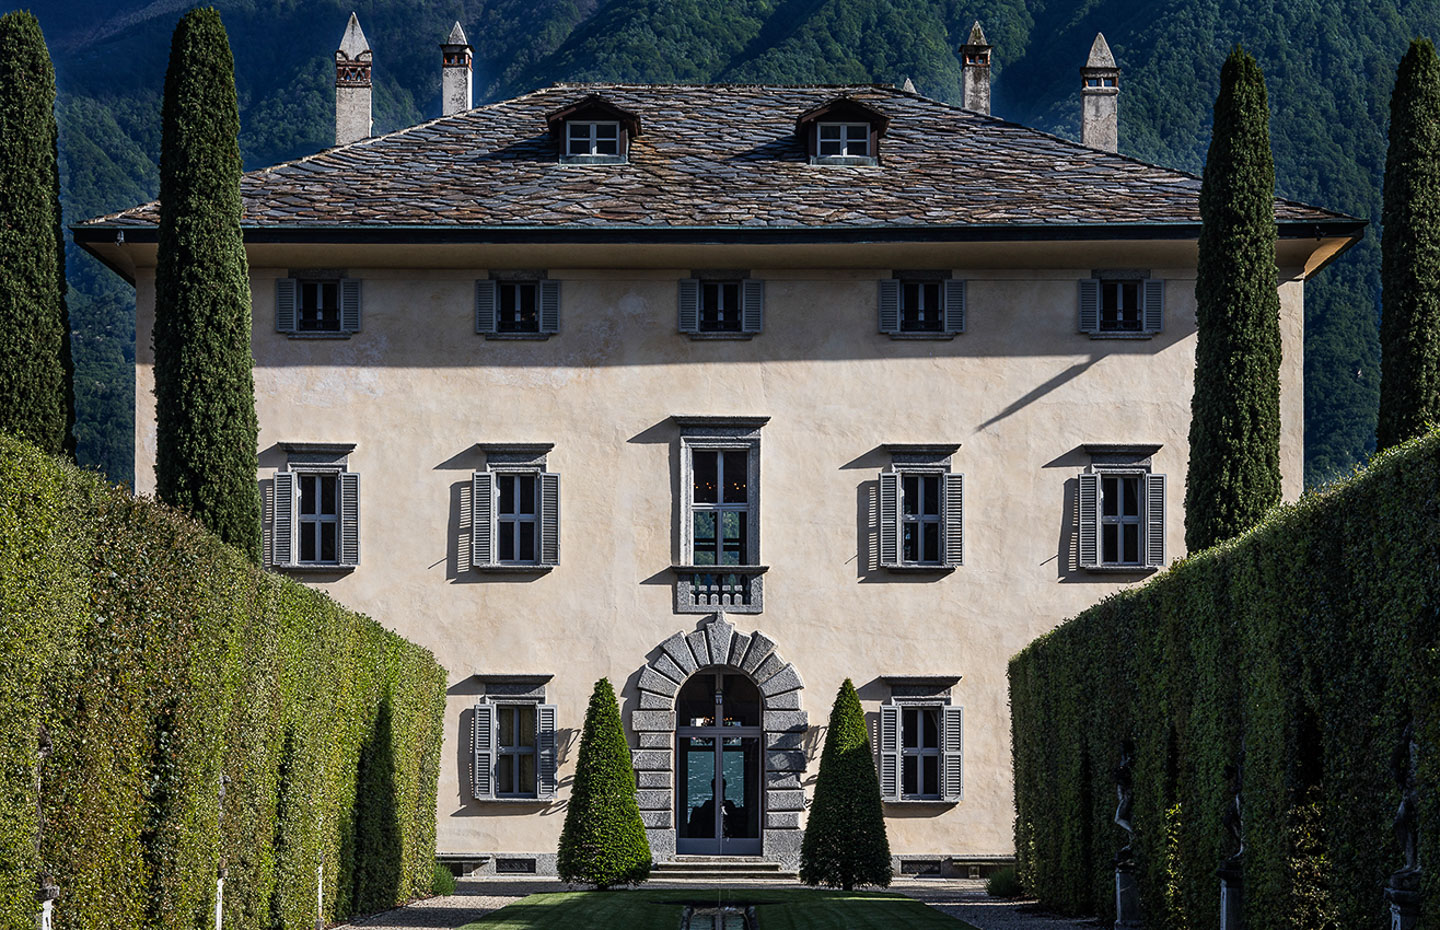 Villa Balbino luxury property Lake Como Italy Milan 4 floor private residence exclusive rental wedding accommodation event elopement engagement best desitination boat access service